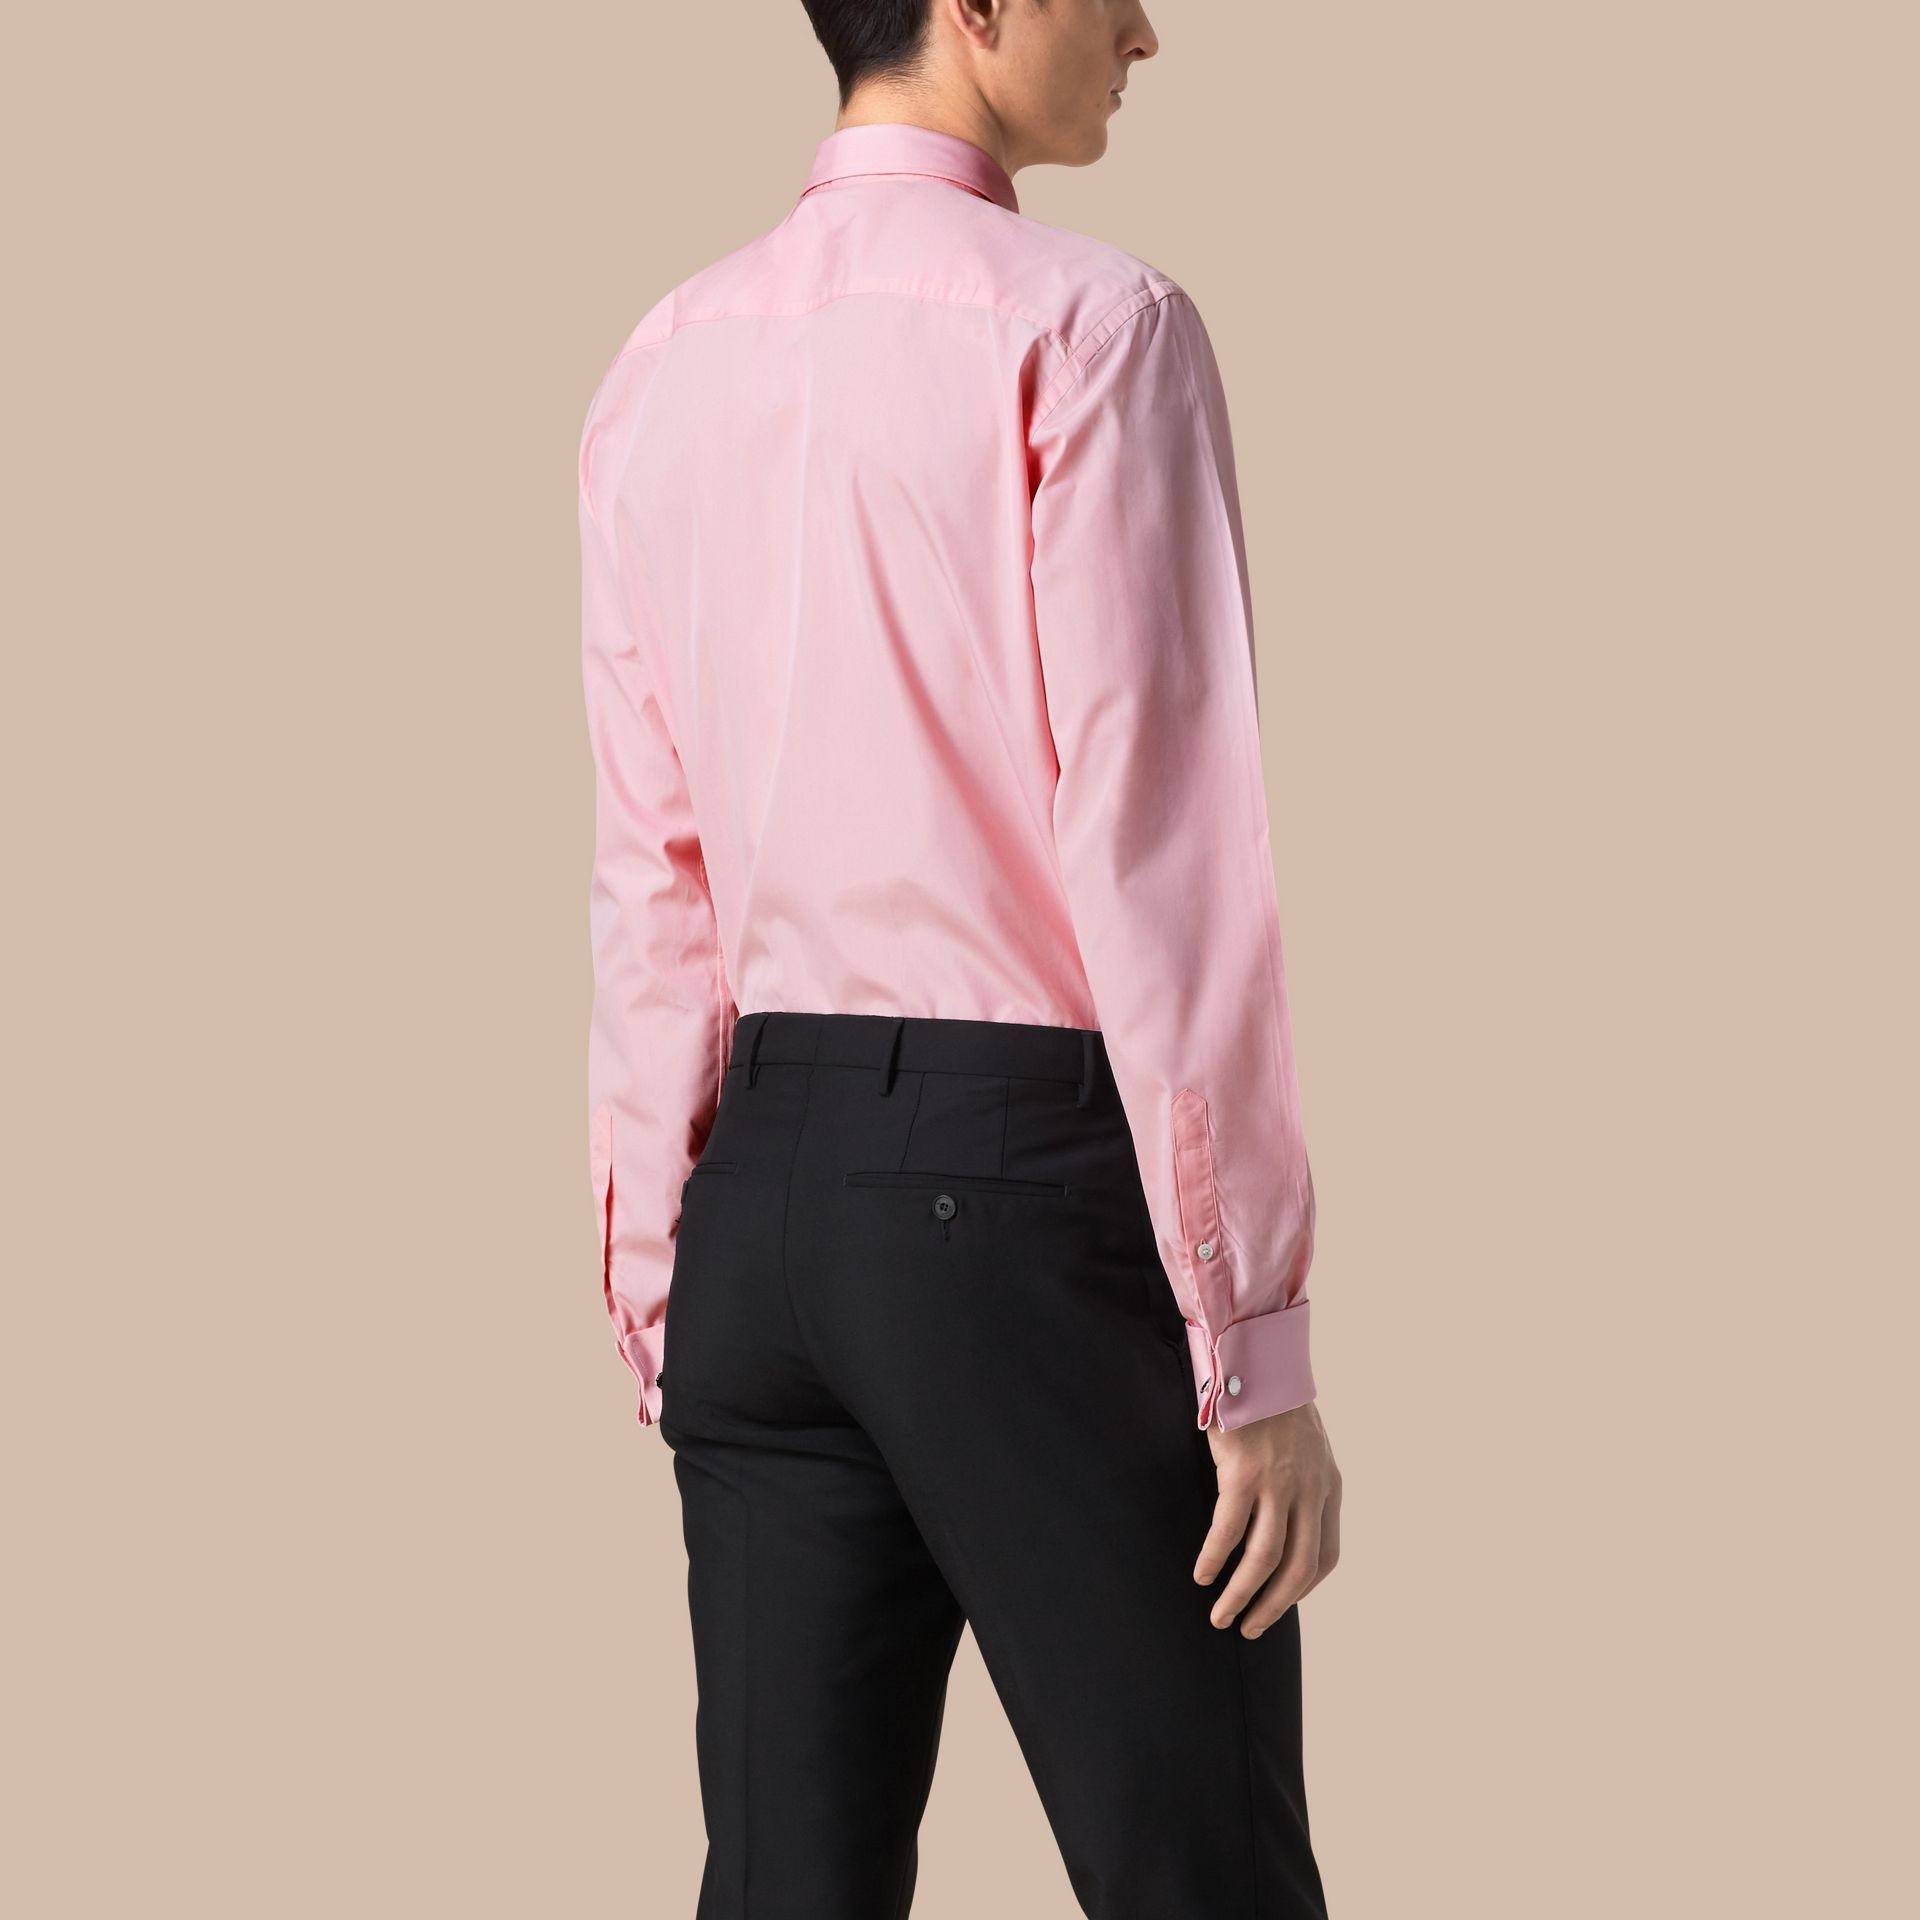 City pink Modern Fit Double-cuff Cotton Poplin Shirt City Pink - gallery image 3